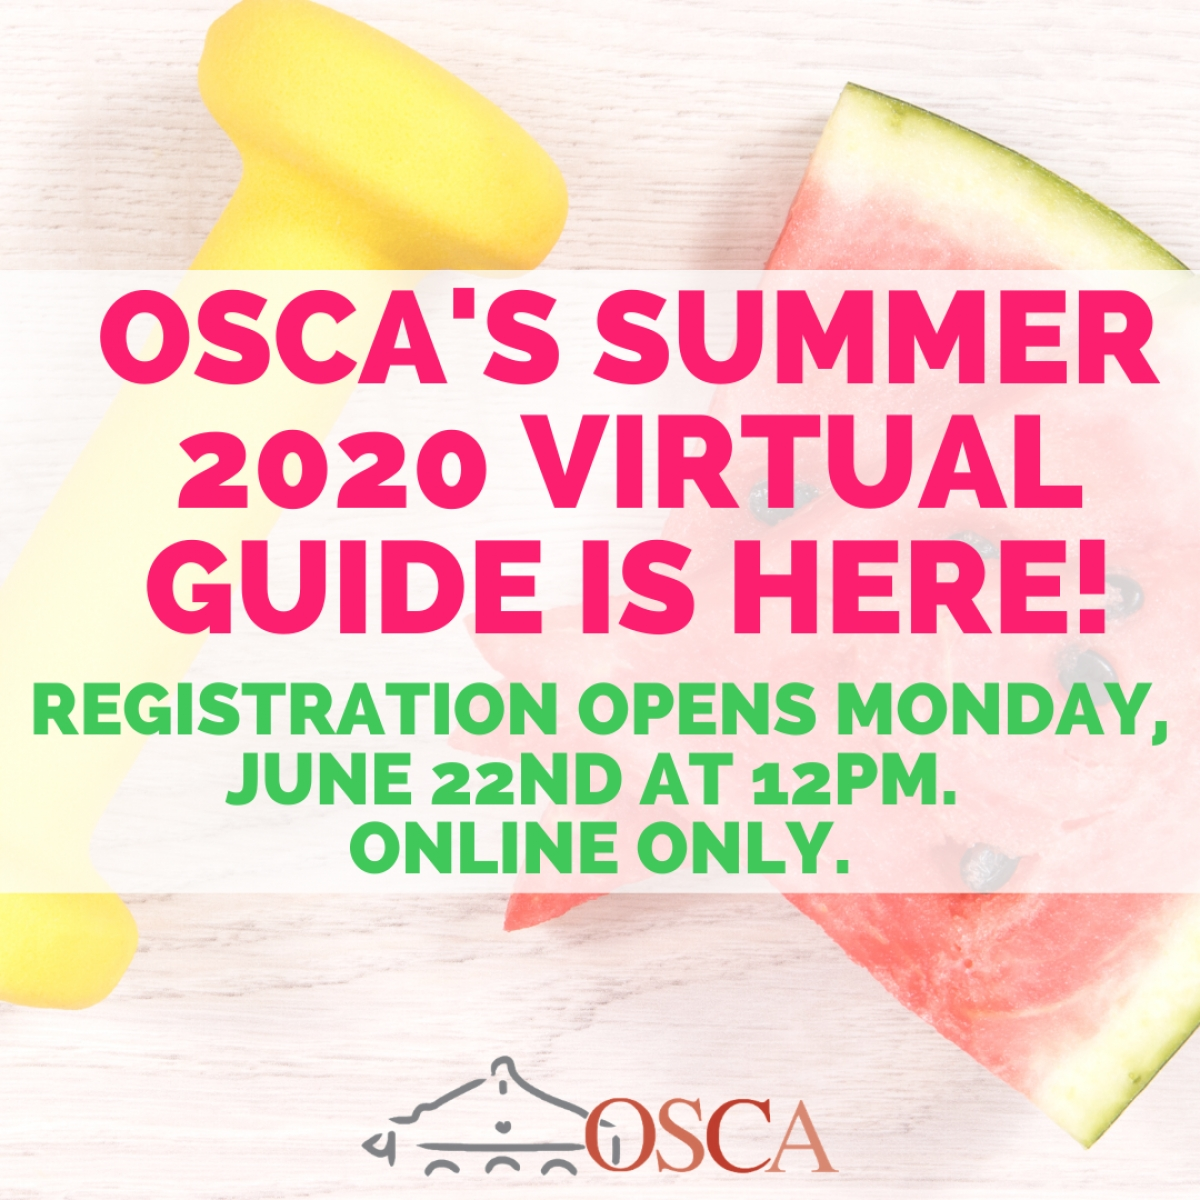 OSCA's 2020 Summer Program Guide Is Now Available